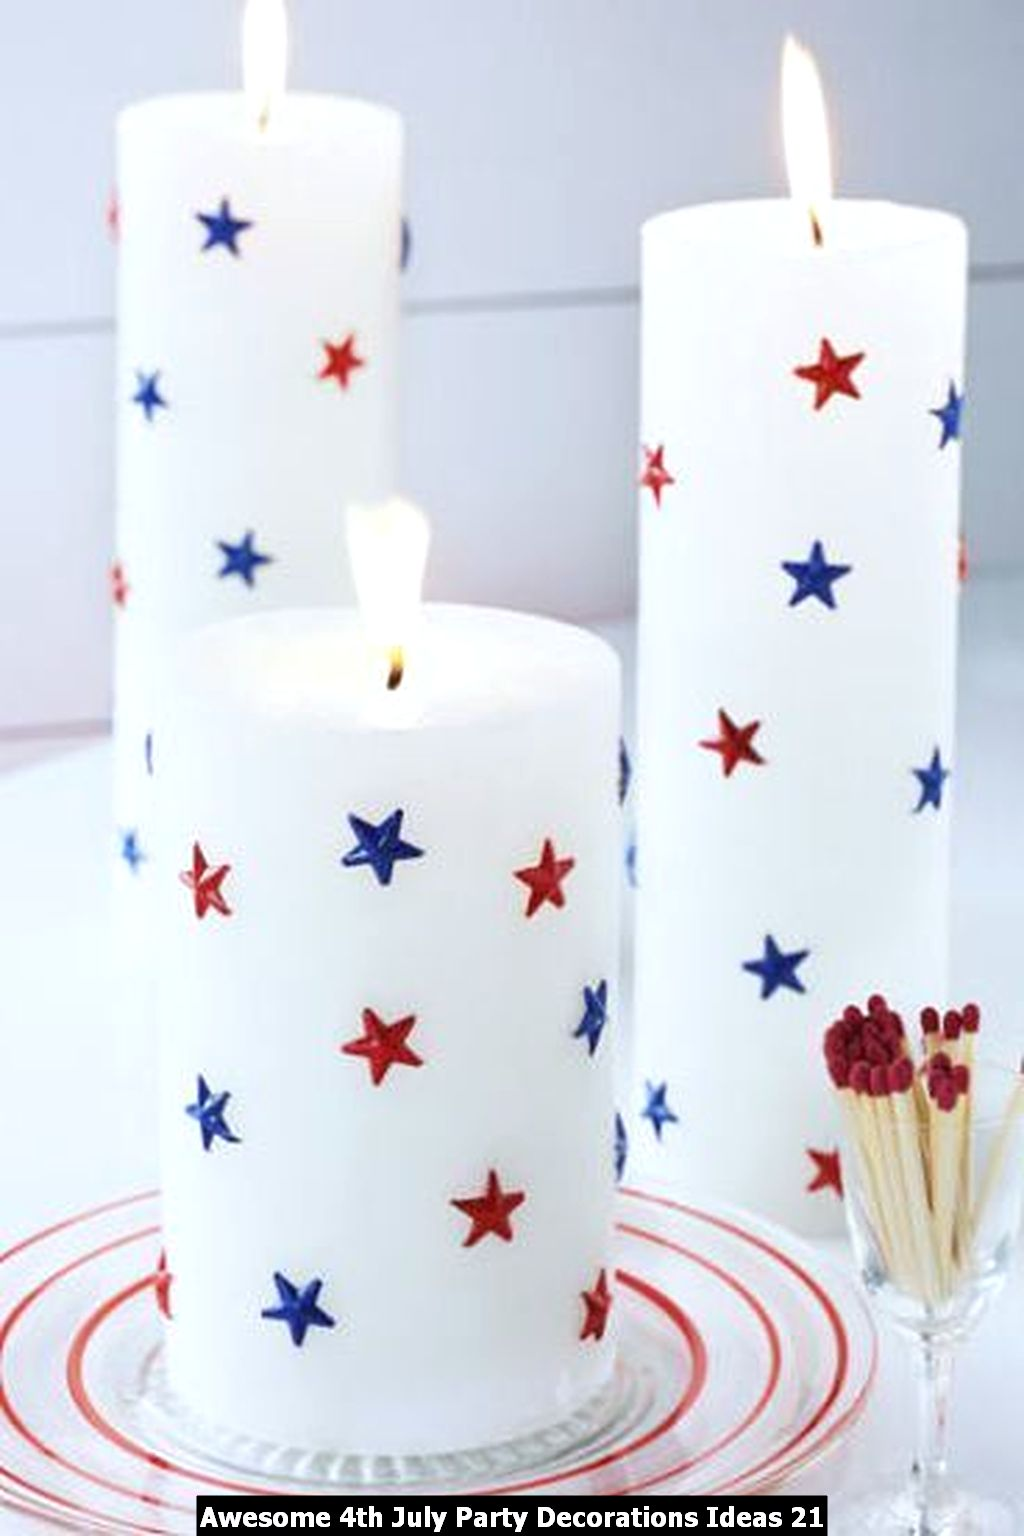 Awesome 4th July Party Decorations Ideas 21